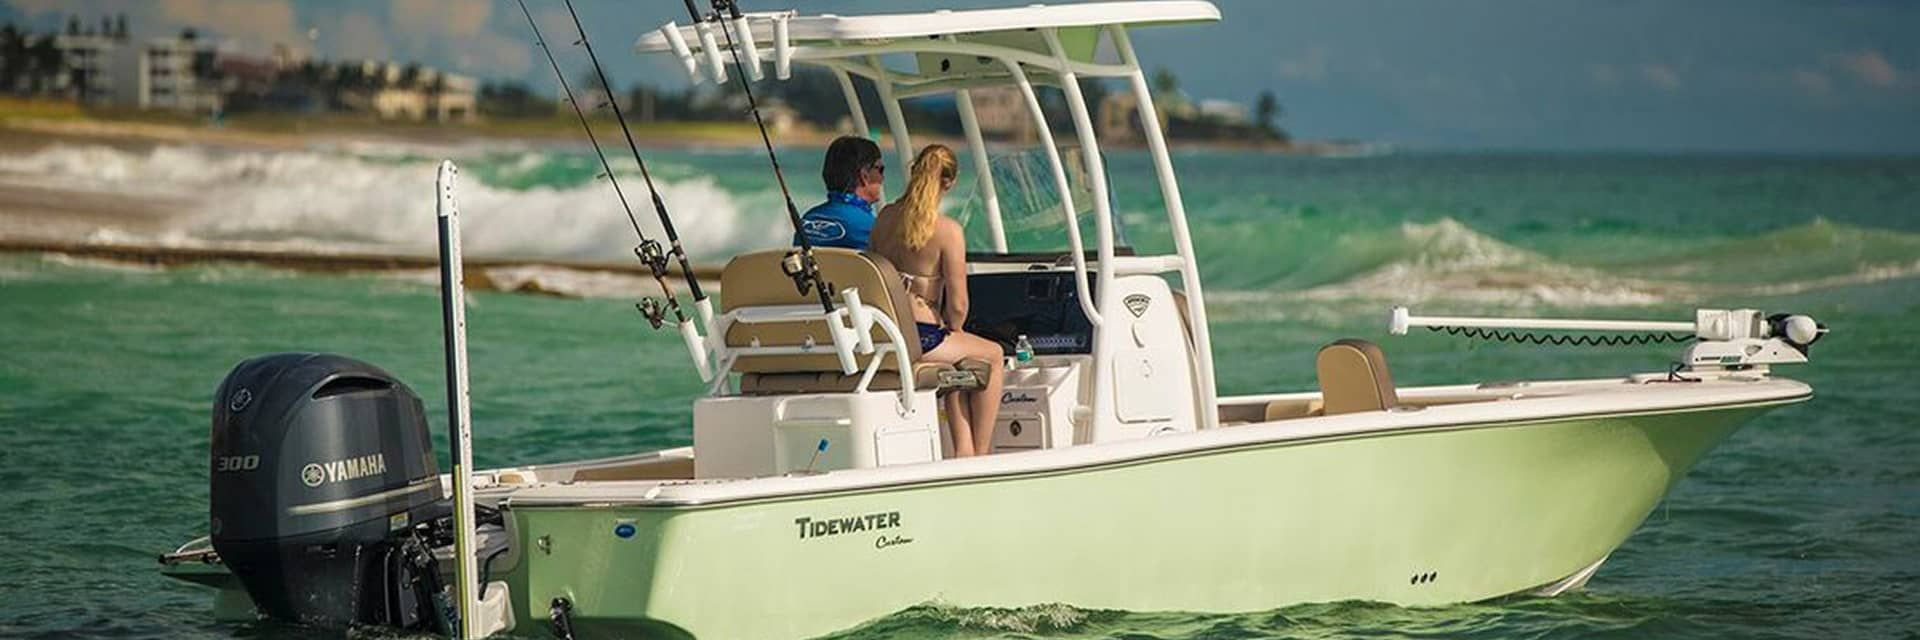 Tidewater Boats are available at Wilson's Marine | Newberry, SC